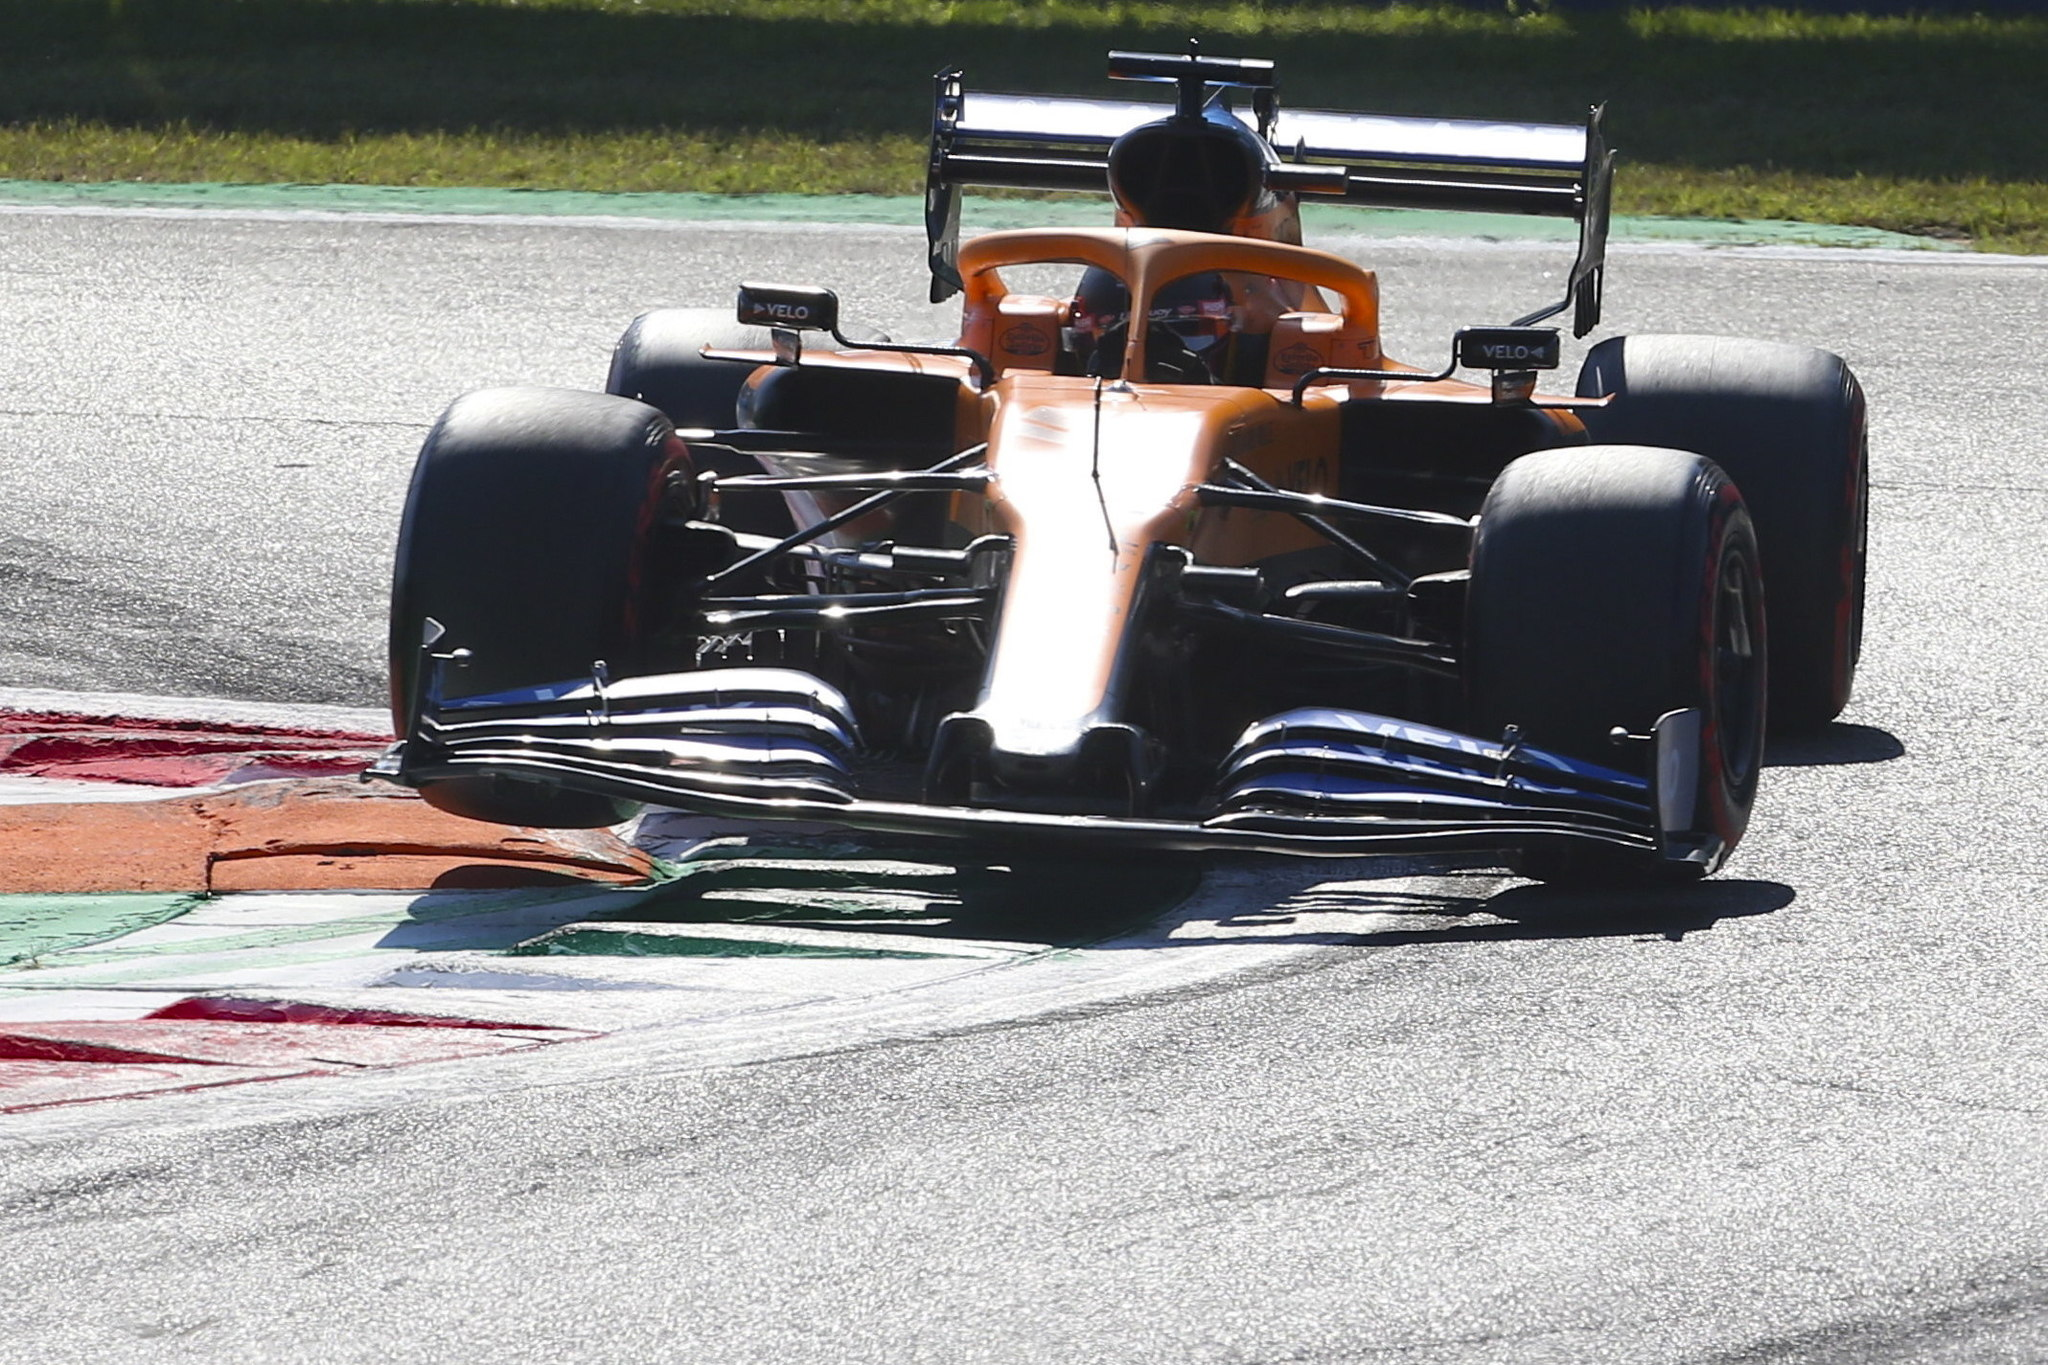 Monza (Italy), 05/09/2020.- Spanish Formula One driver Carlos lt;HIT gt;Sainz lt;/HIT gt; of McLaren in action during the qualifying session of the Formula One Grand Prix of Italy at the Monza race track, Monza, Italy 05 September 2020. The 2020 Formula One Grand Prix of Italy will take place on 06 September 2020. (Fórmula Uno, Italia) EFE/EPA/Matteo Bazzi / Pool